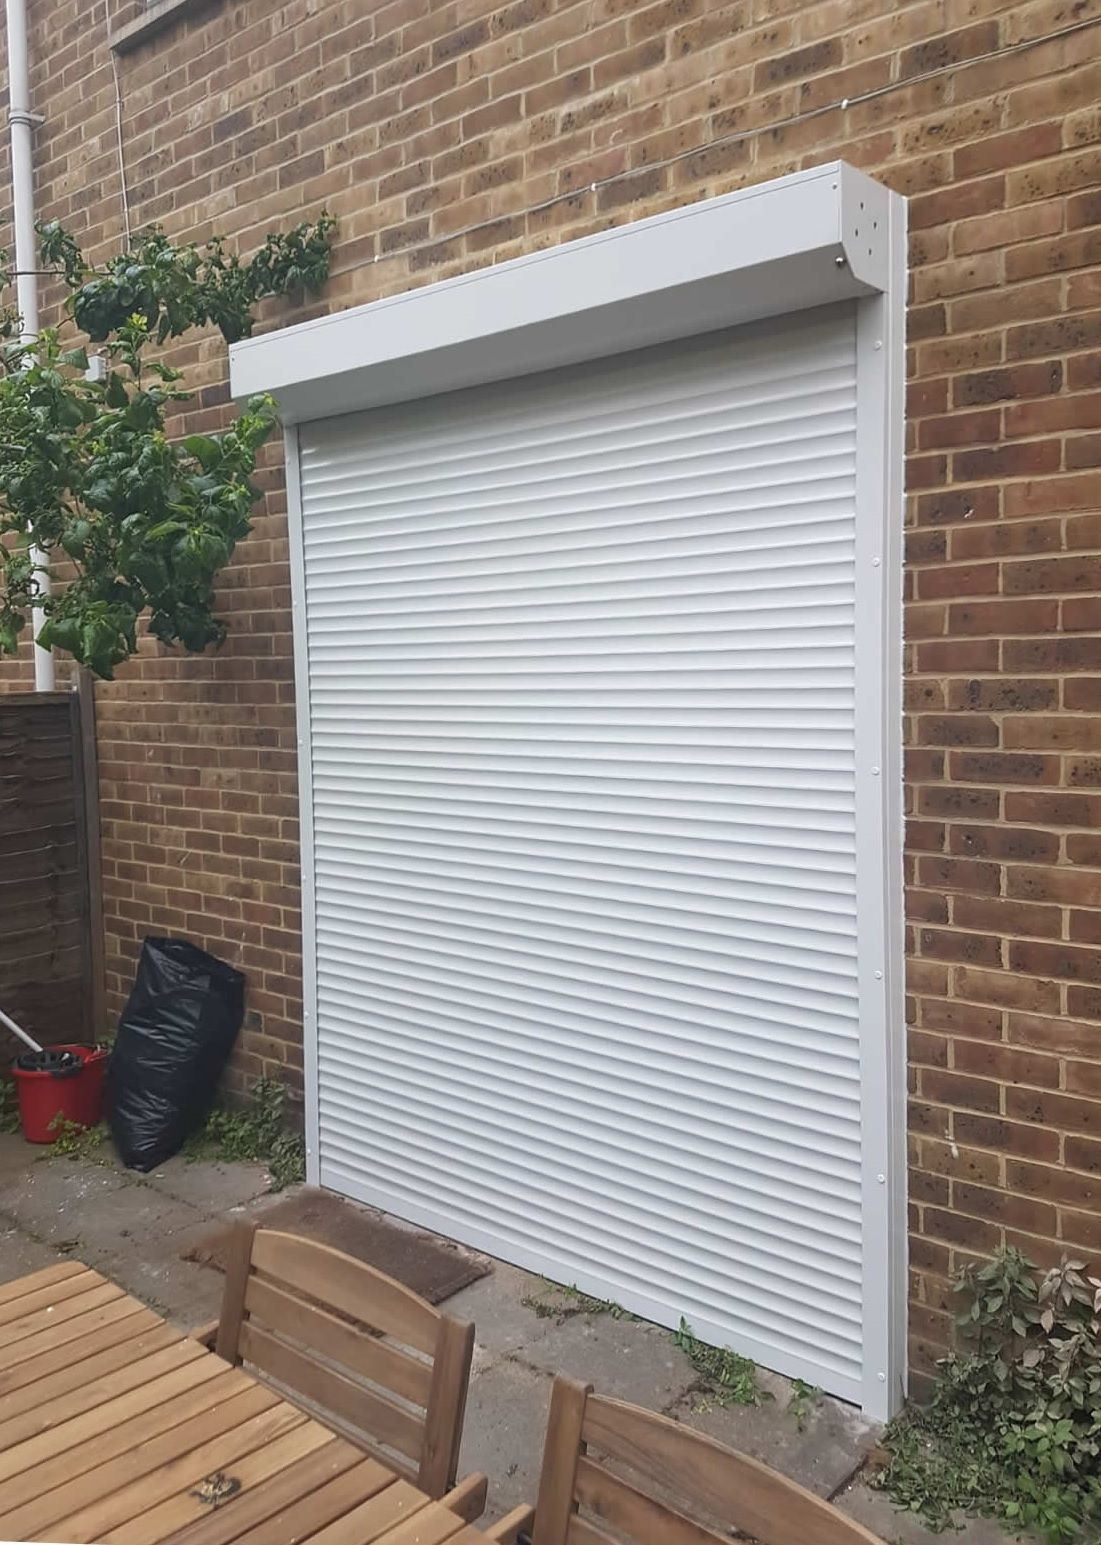 Our Rsg5100 Continental Roller Shutter Protecting Family Home In